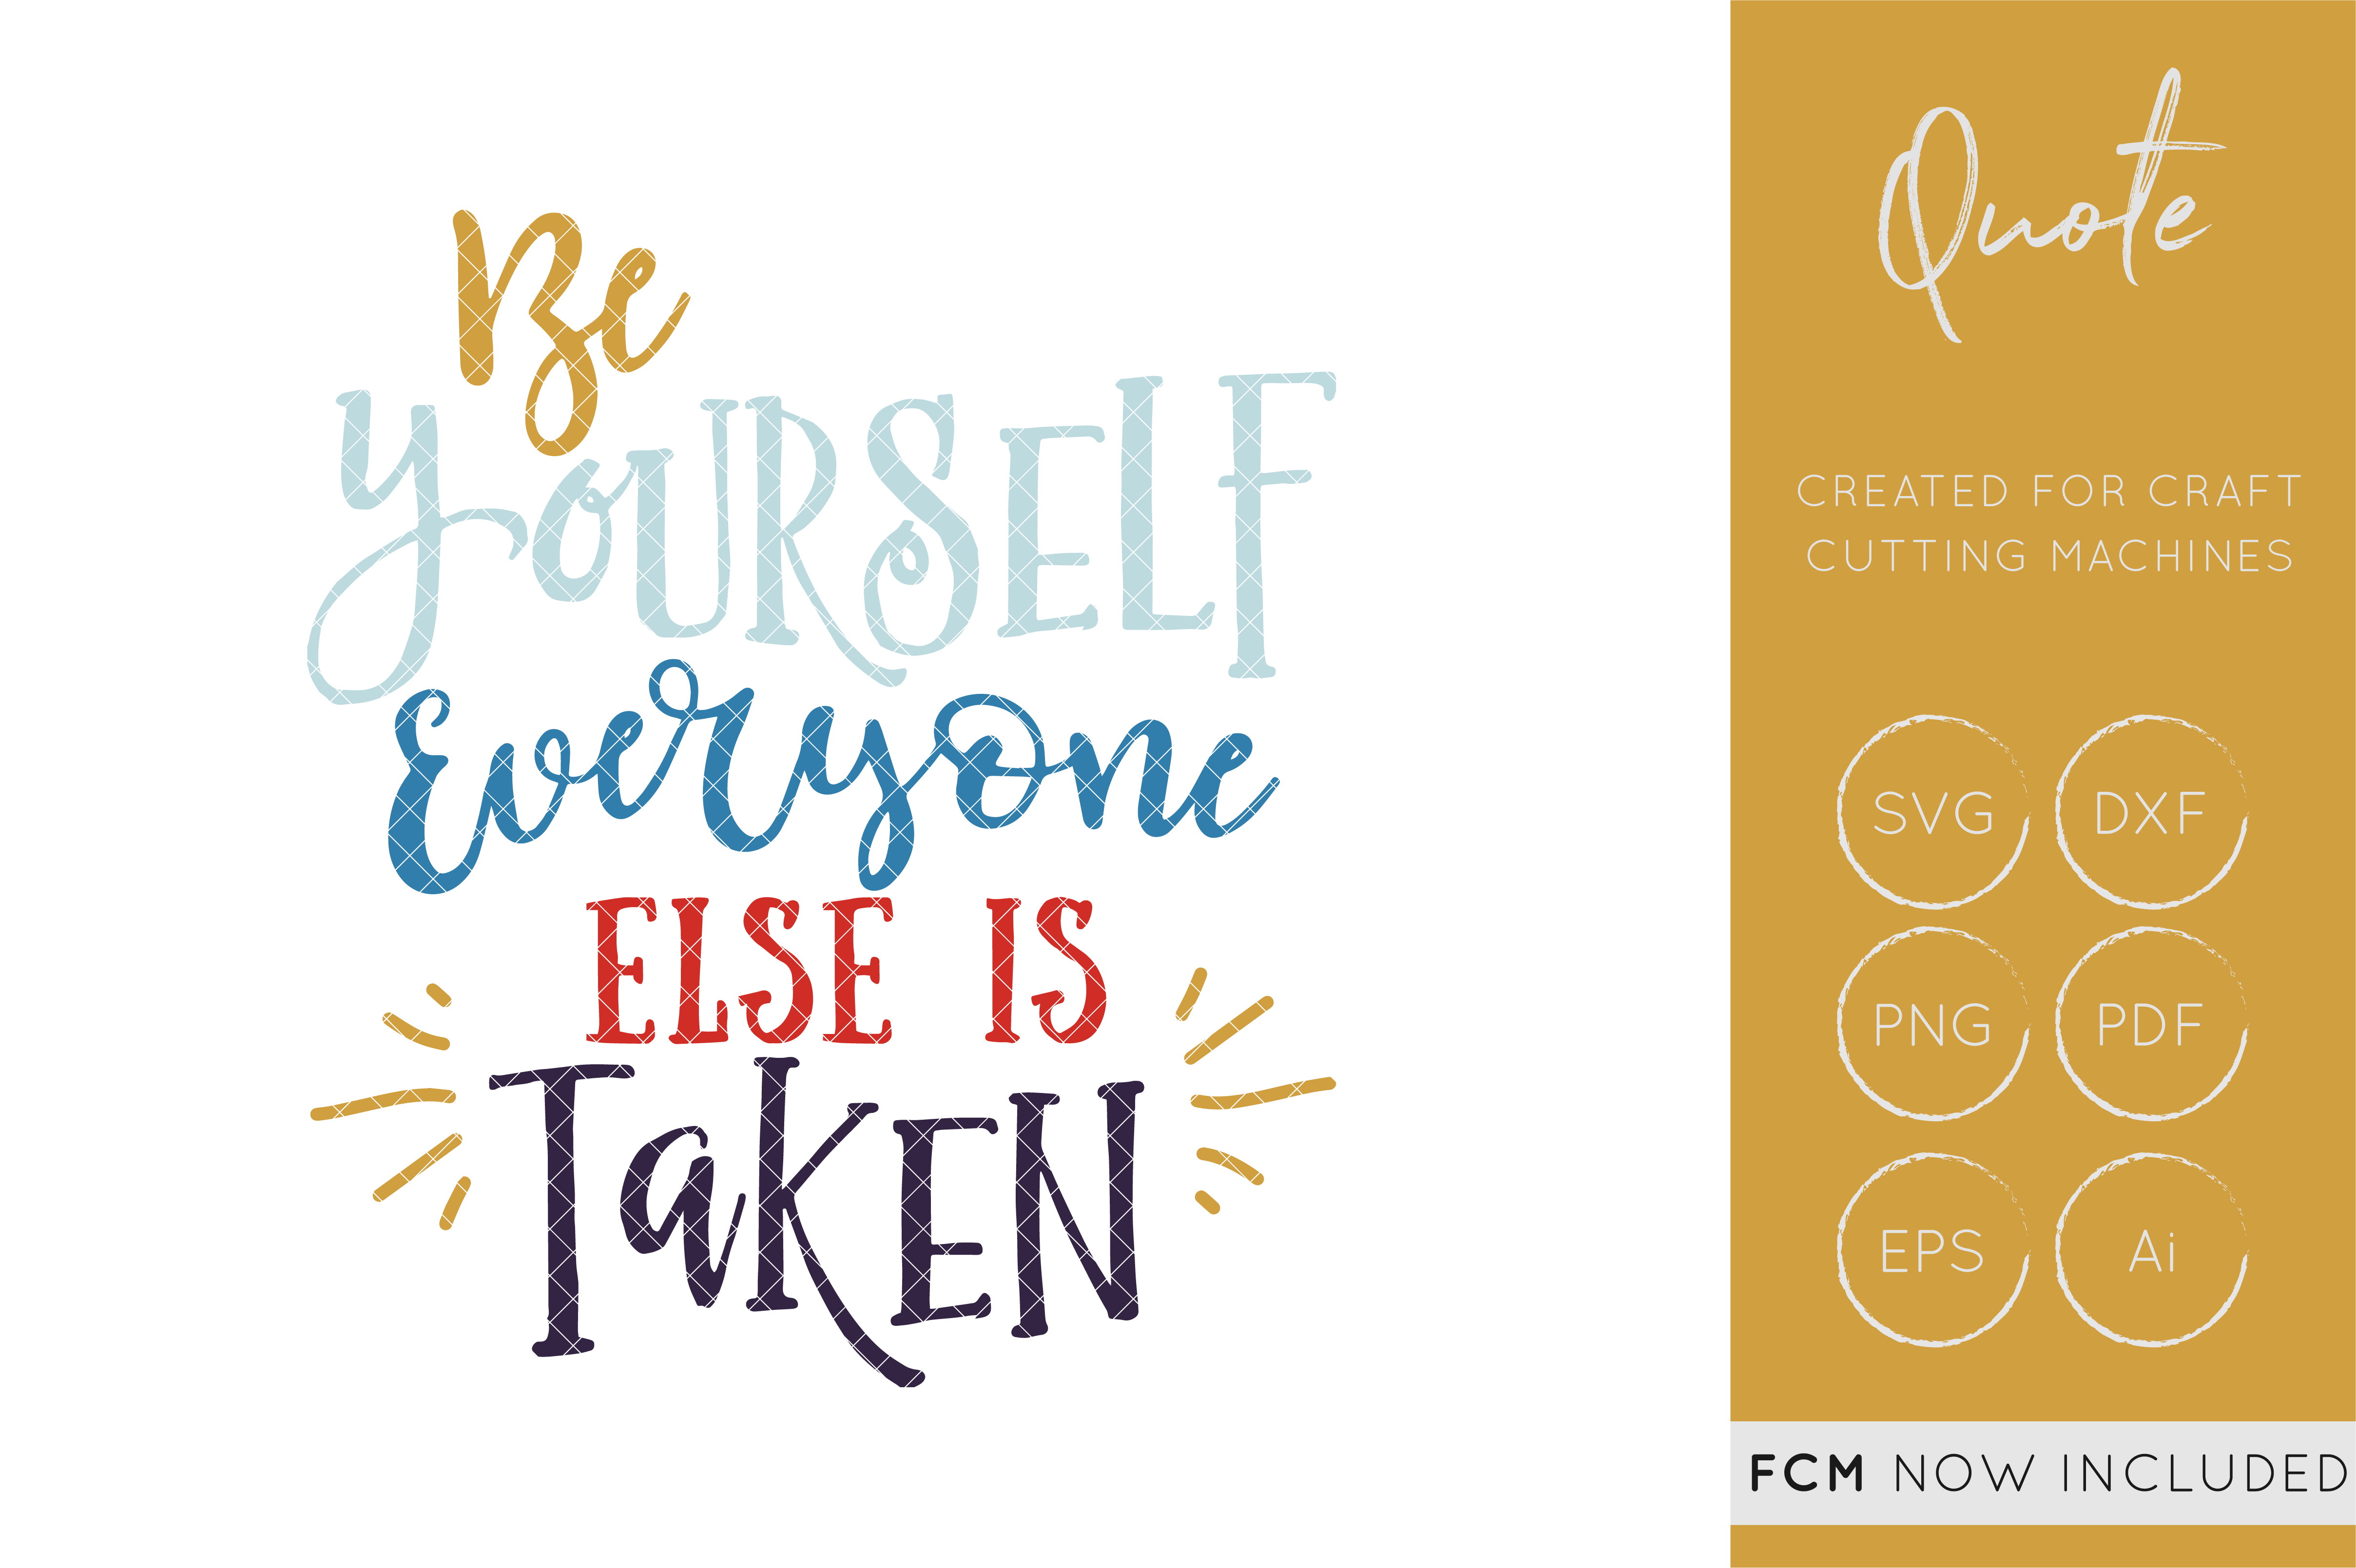 Download Free Be Yourself Everyone Else Is Taken Svg Cut File Dxf Quote for Cricut Explore, Silhouette and other cutting machines.